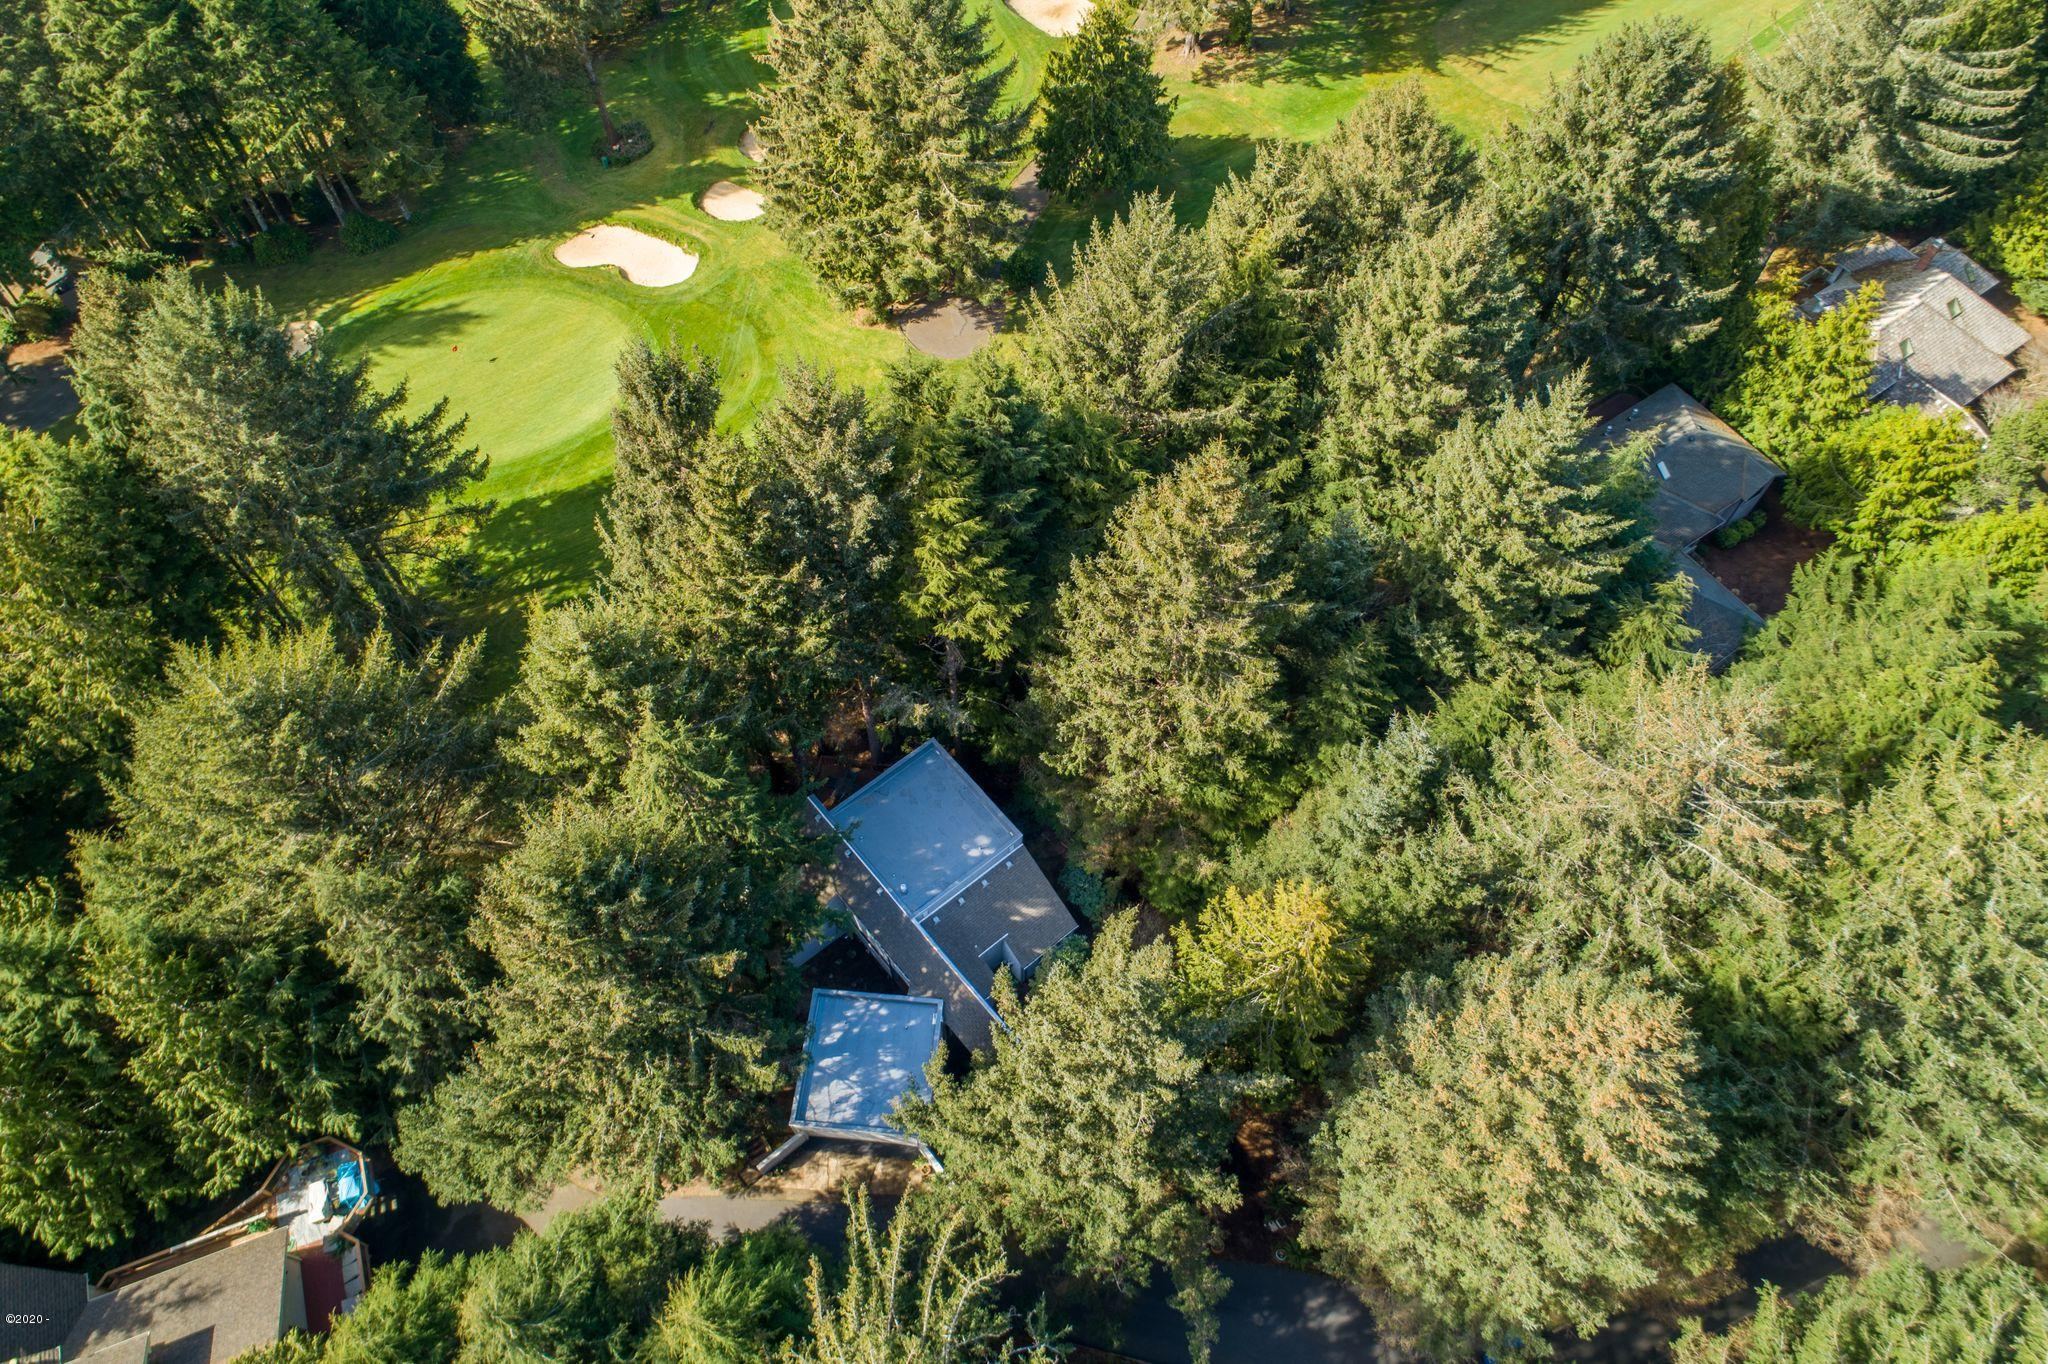 554 Fairway Drive, Gleneden Beach, OR 97388 - Aerial of house and green